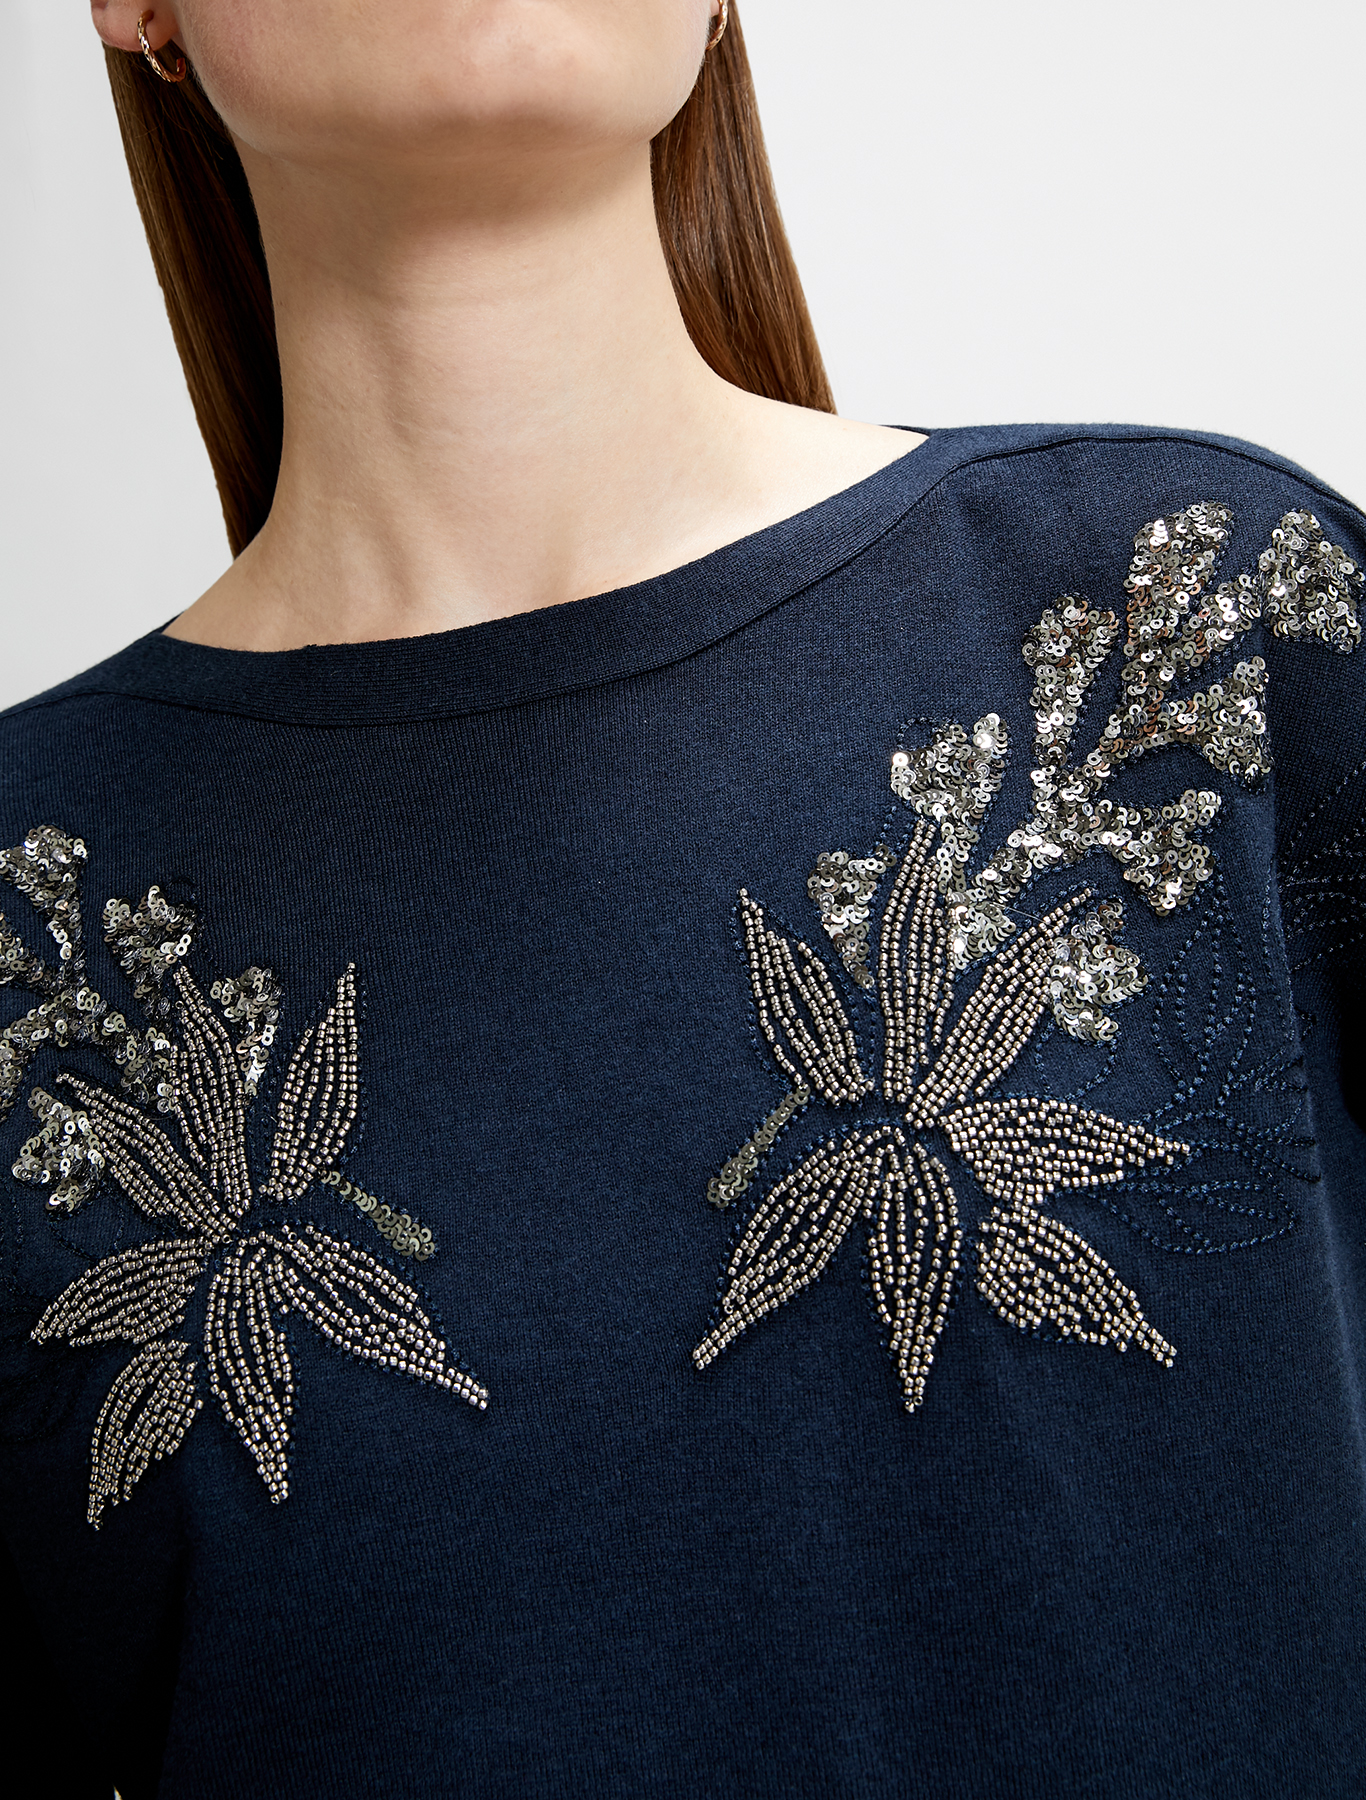 Jumper with jewelled embroidery - navy blue - pennyblack